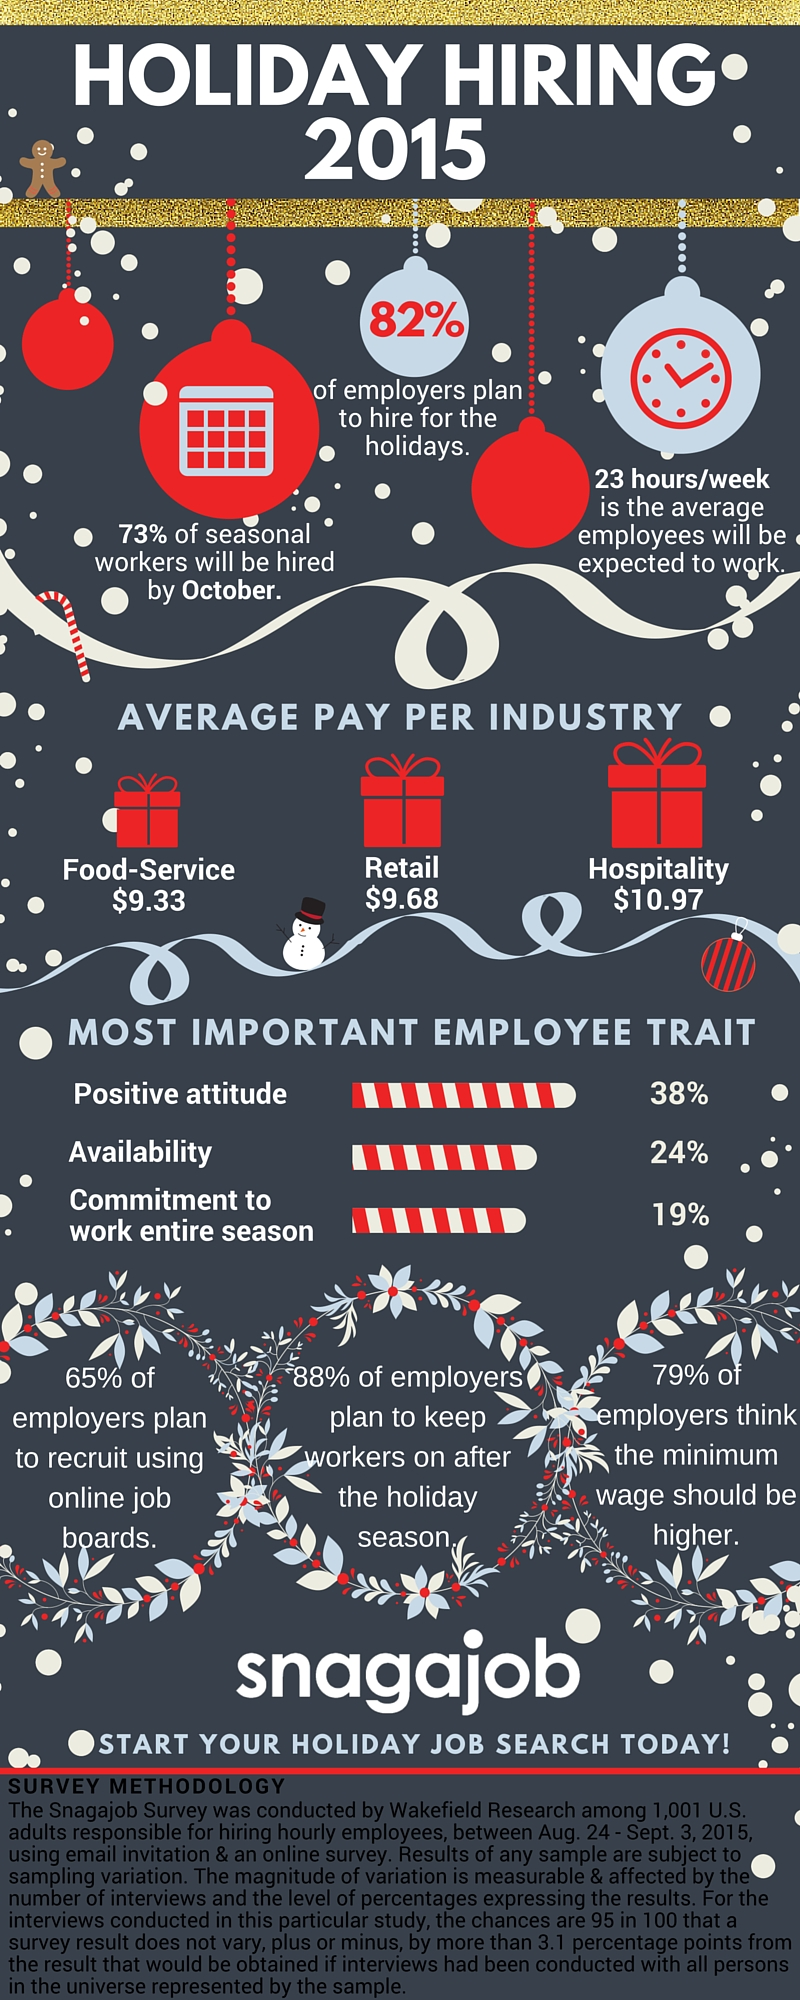 Snagajob Holiday Hiring Infographic 2015